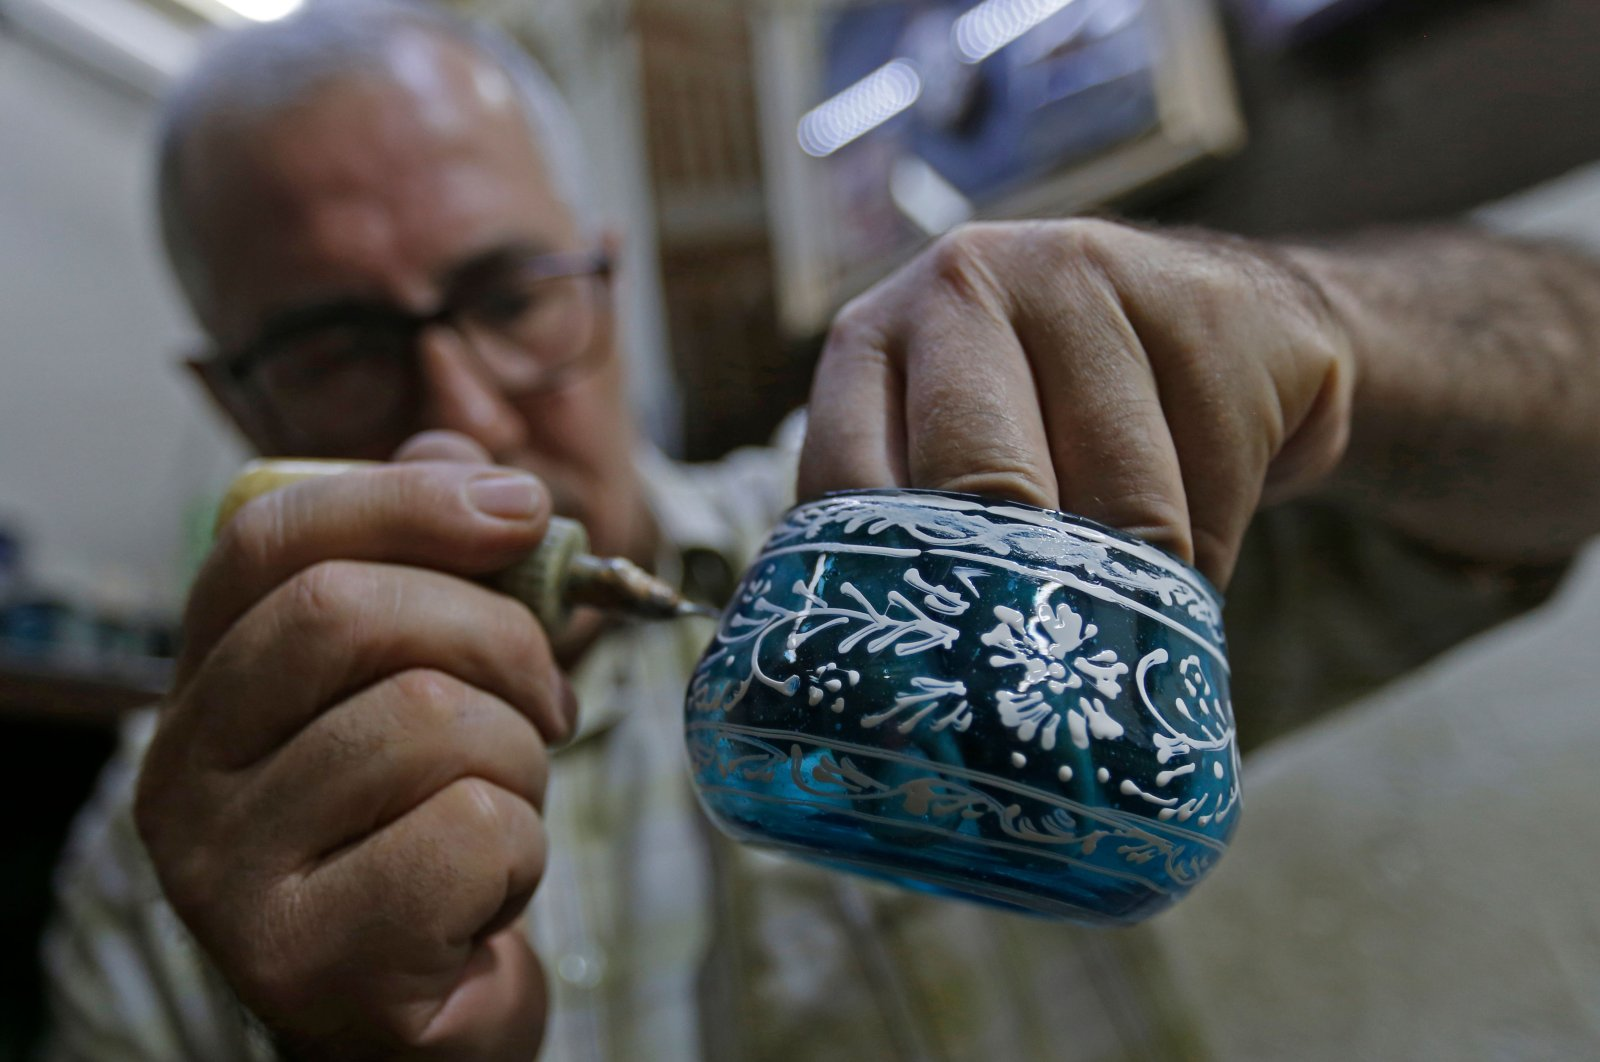 Syrian Mohamed al-Hallak, 62, forms a votive in a glass-blowing workshop in Syria's capital Damascus, Aug. 26, 2020. (AFP Photo)